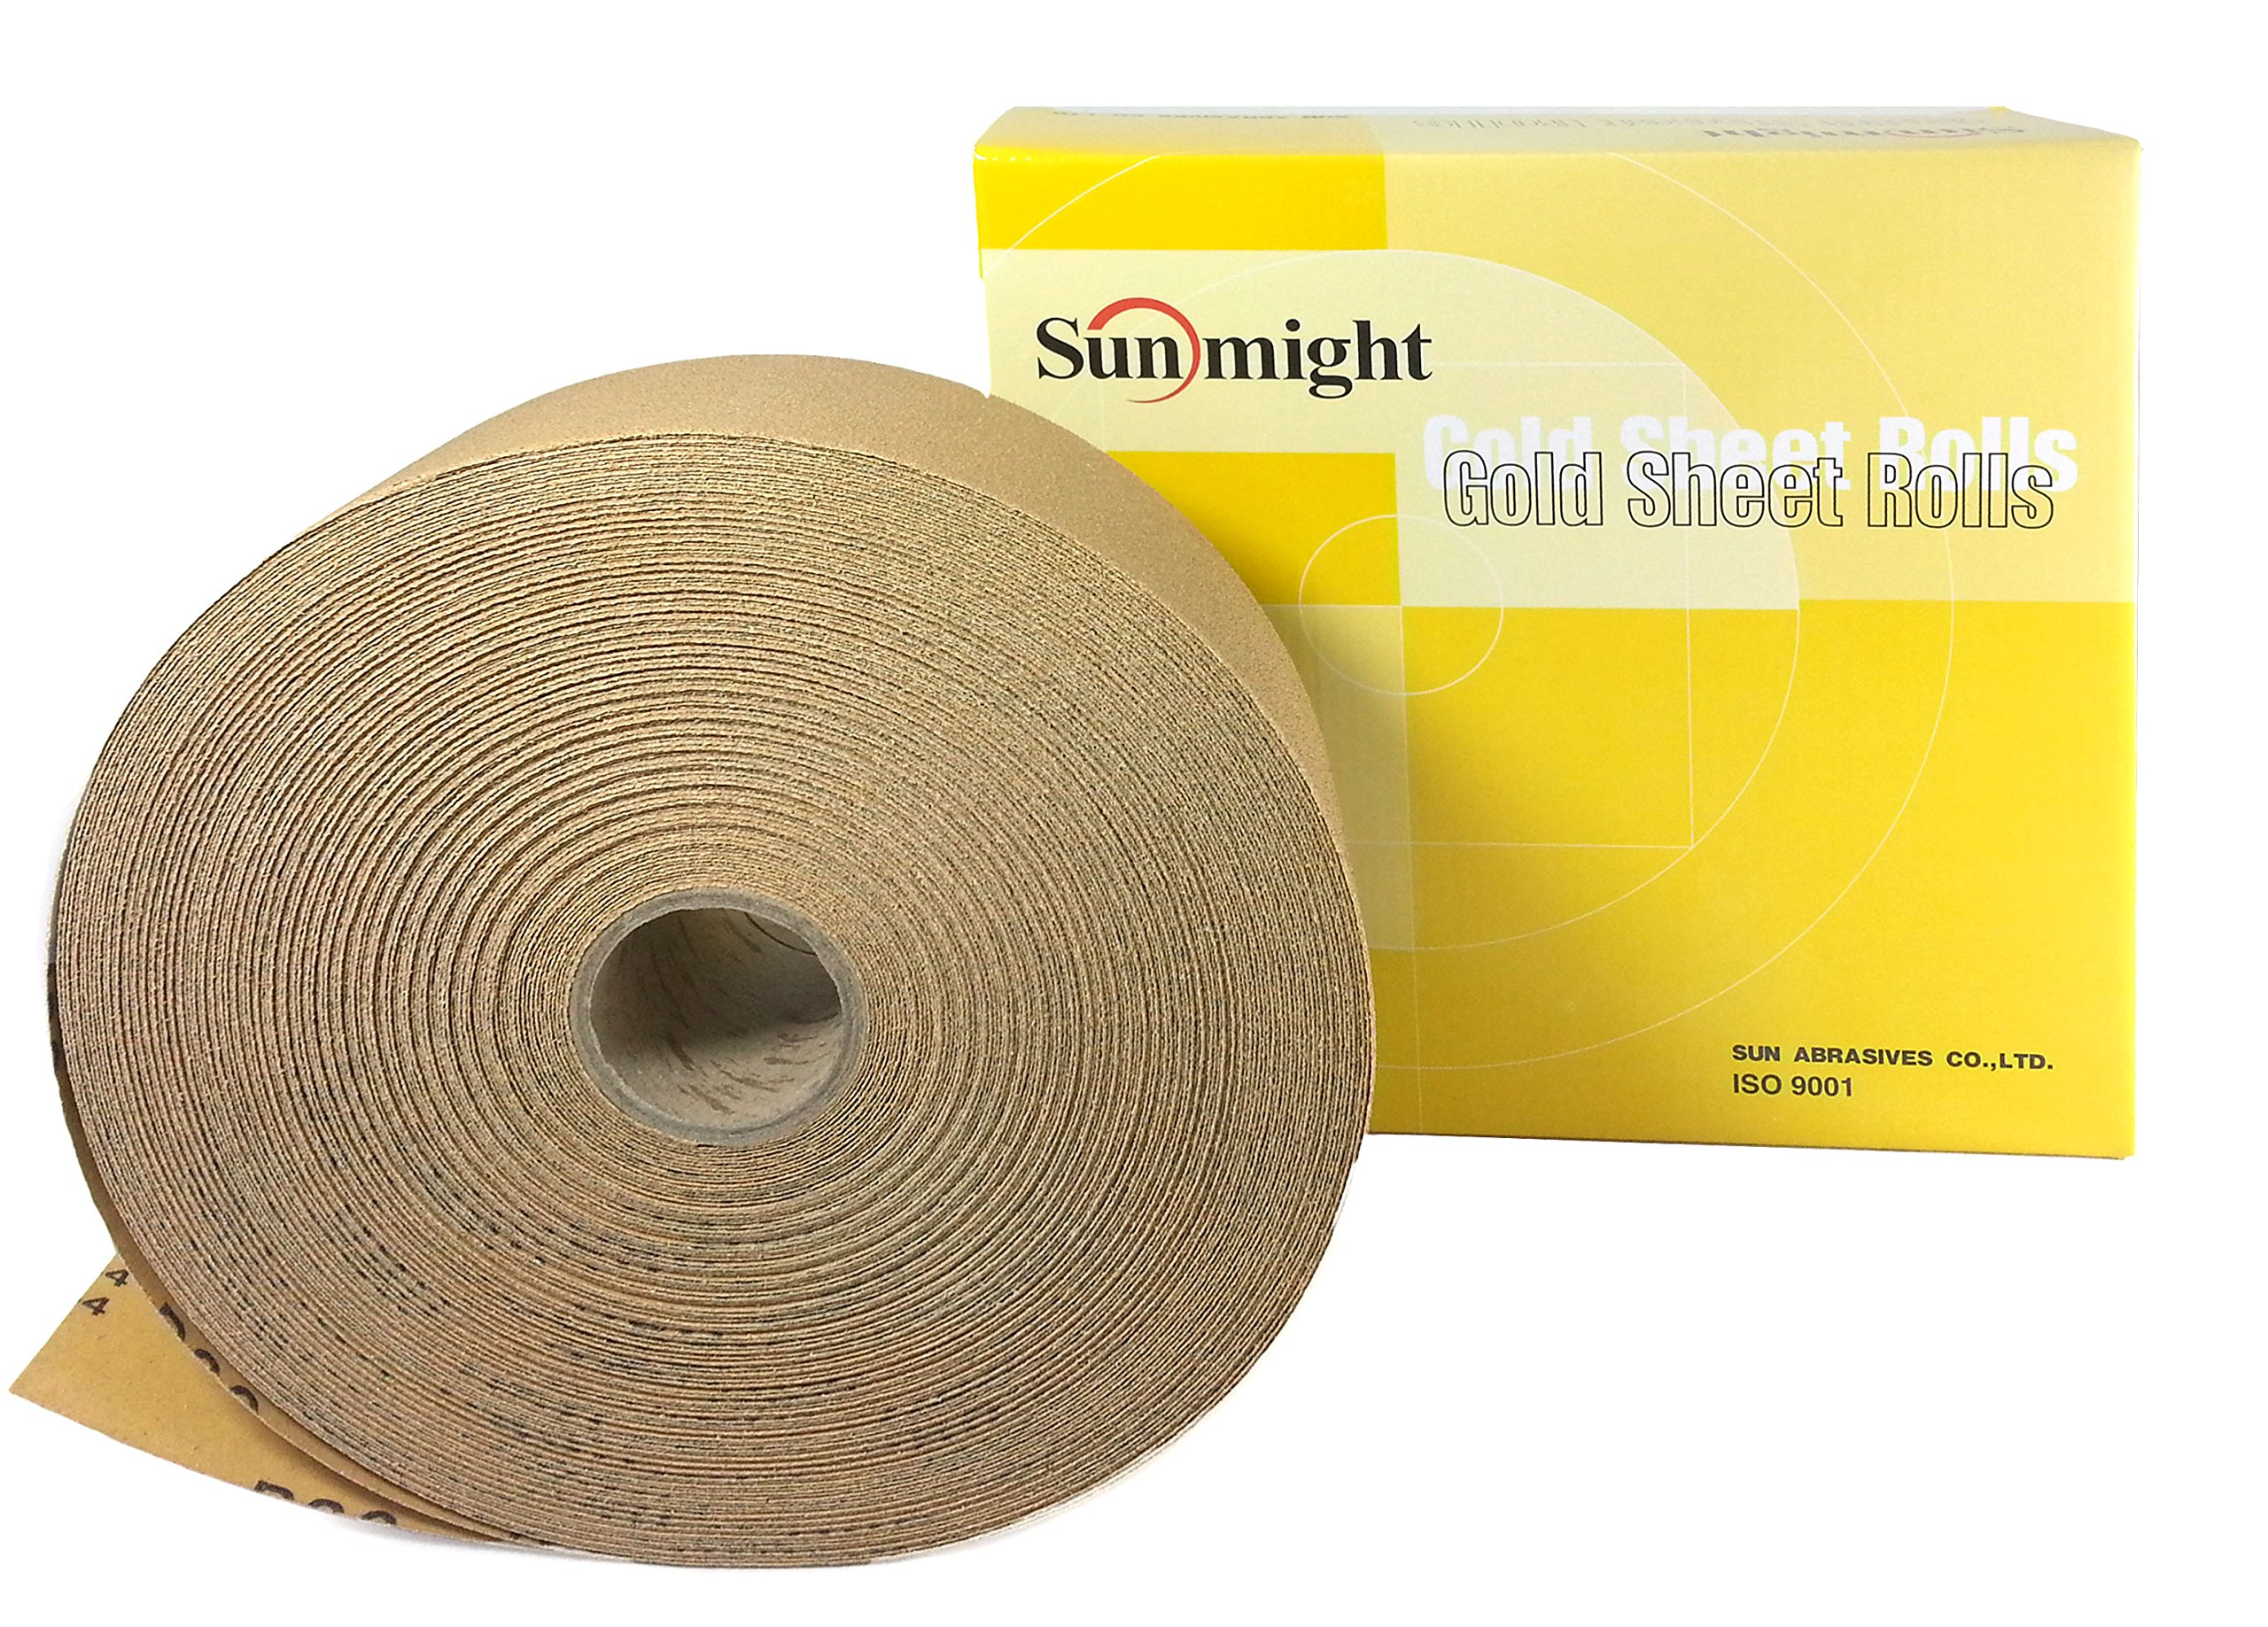 Sunmight 06108 1 Pack 2-3/4'' X 45 yd PSA Sheet Roll (Gold Grit 120) by Sunmight